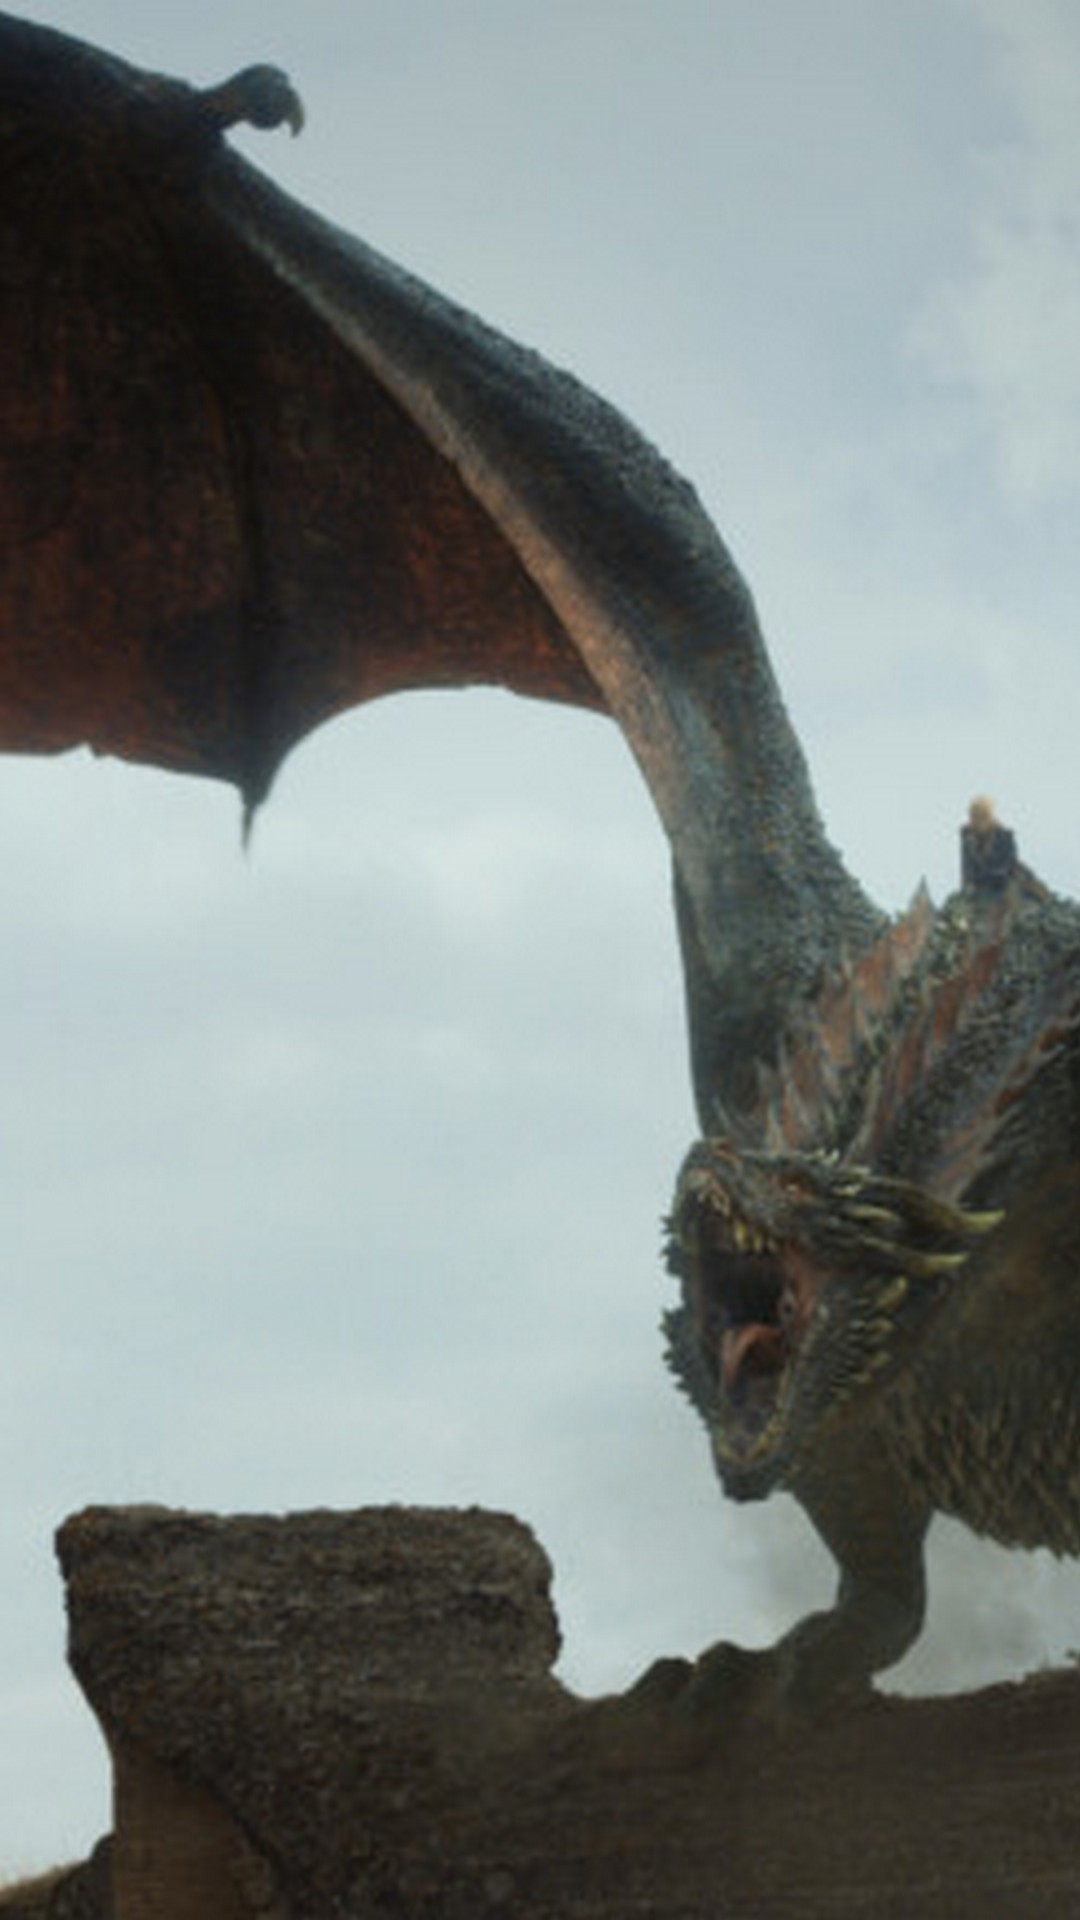 Game Of Thrones Dragons Iphone Wallpaper With High-resolution - Got Dragons Wallpaper Iphone - HD Wallpaper